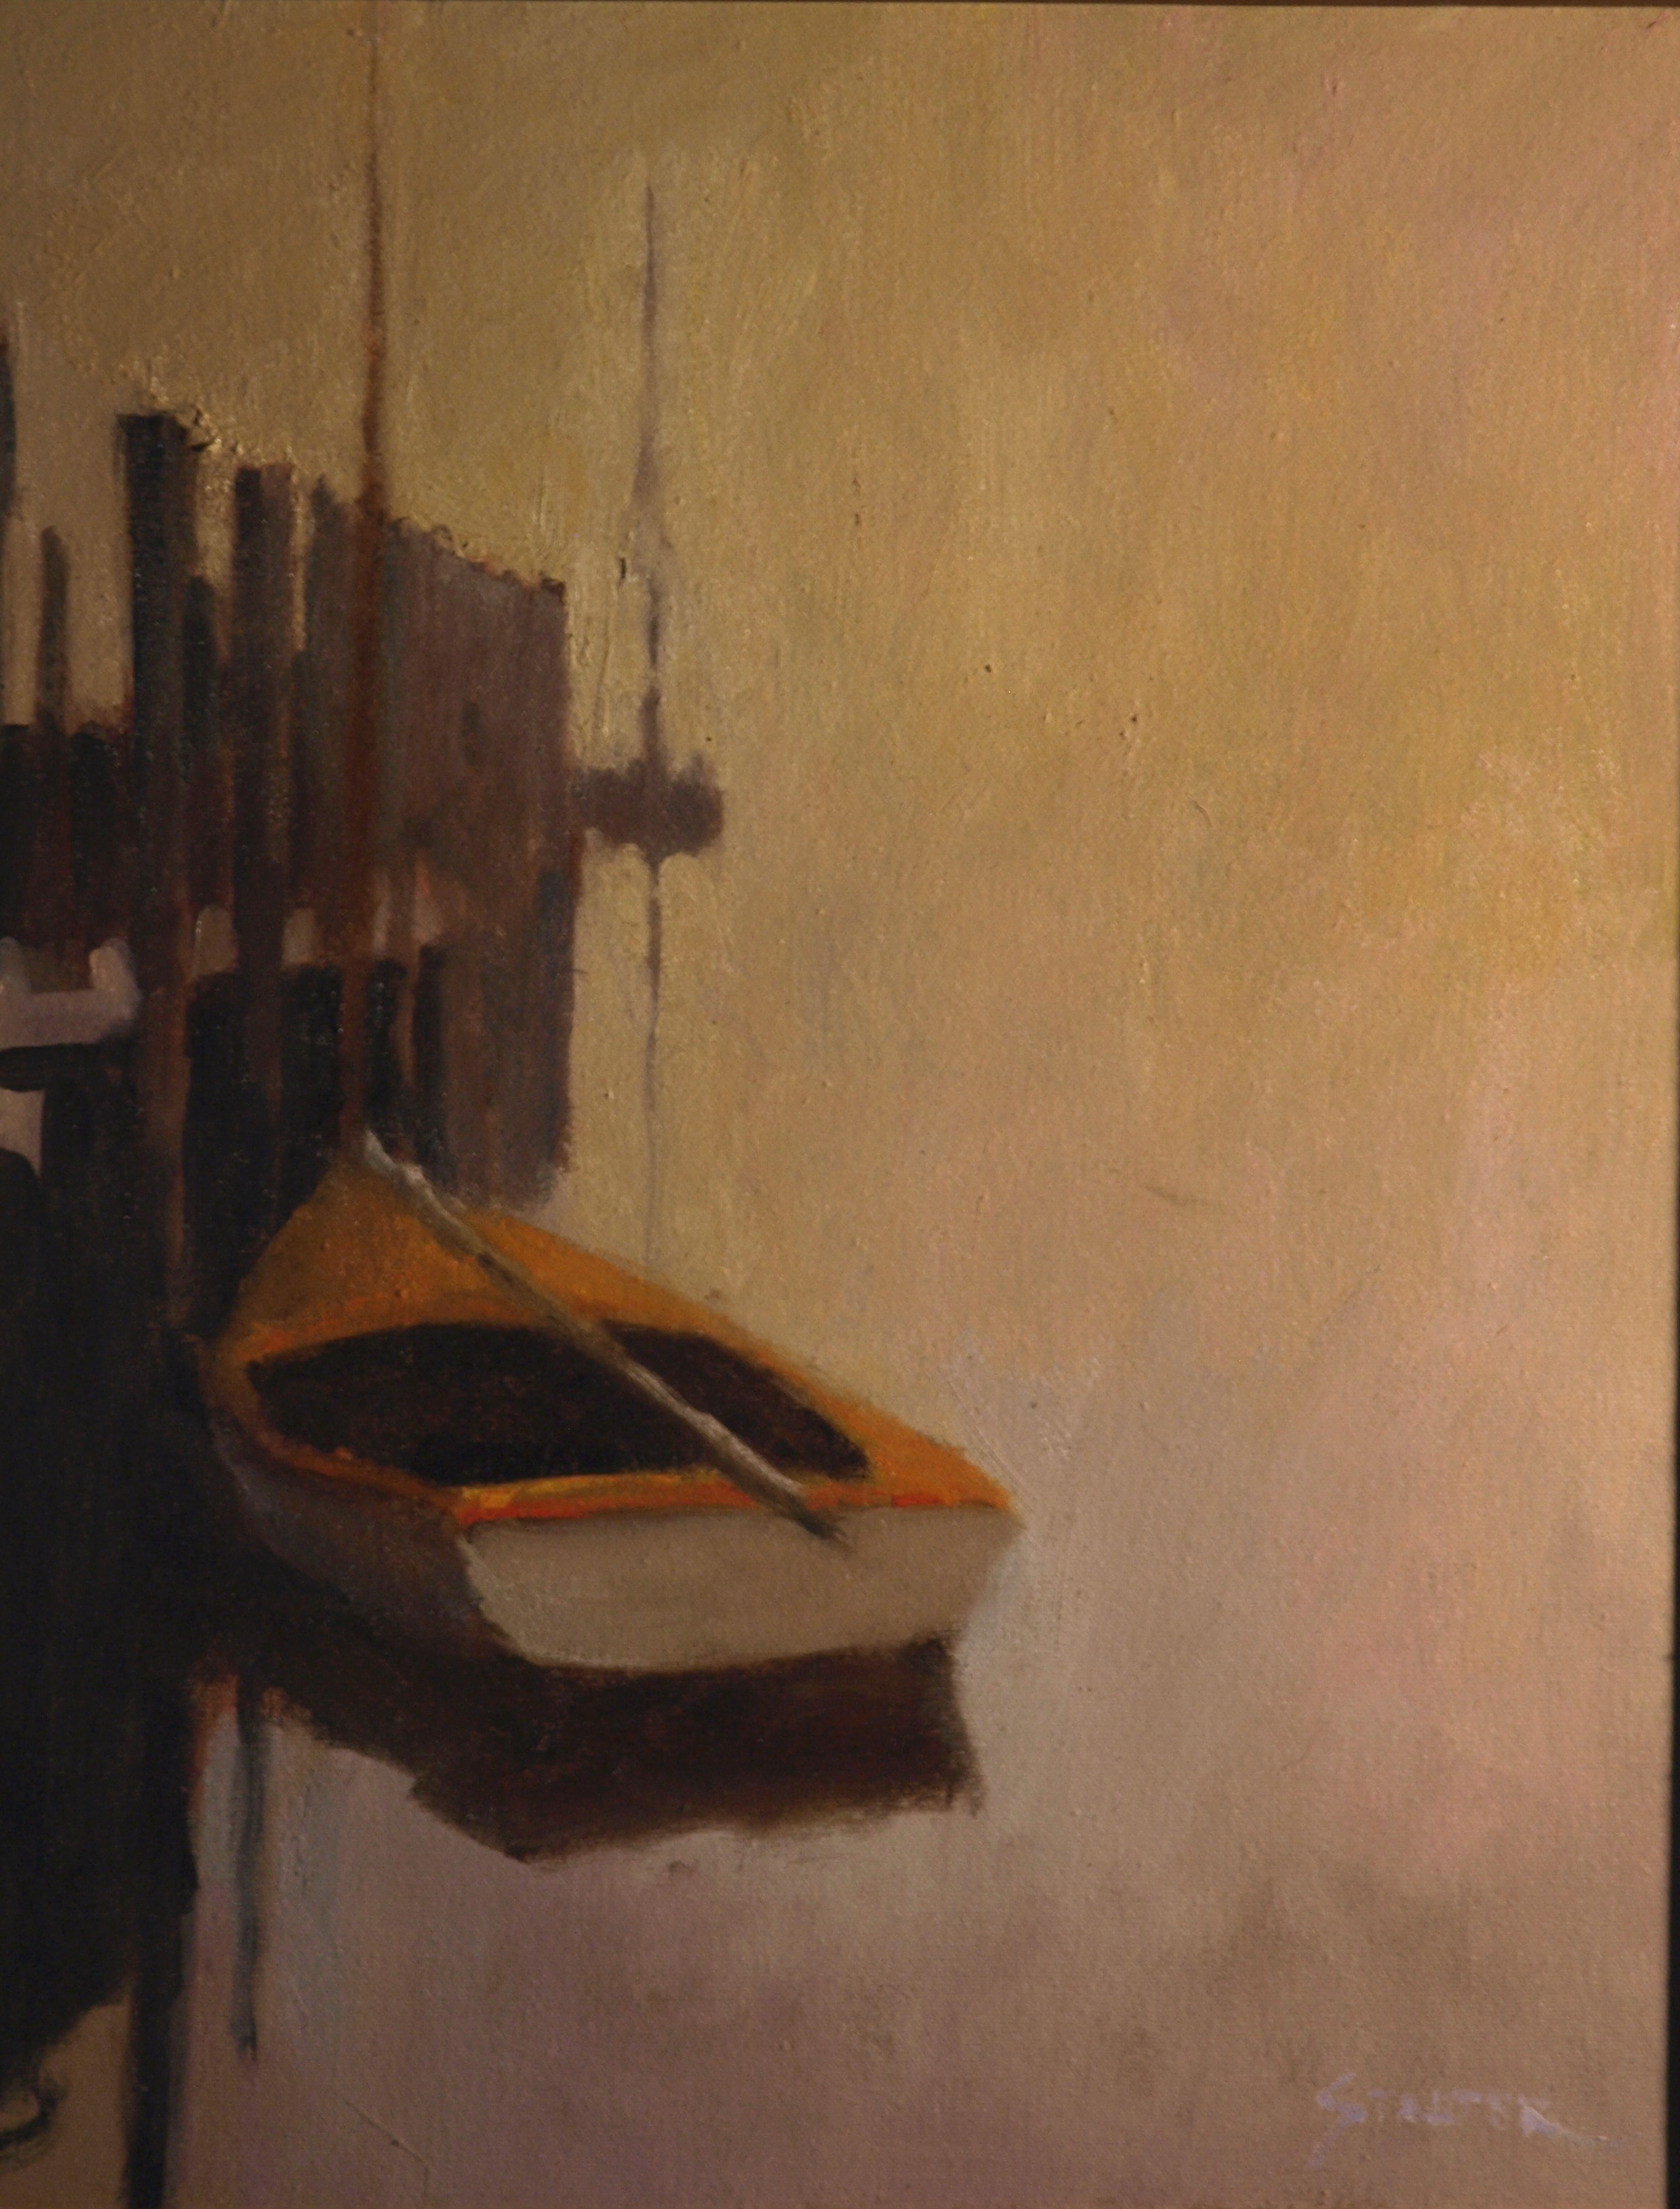 Foggy Day - Dockside, Oil on Canvas, 16 x 20 Inches, by Richard Stalter, $650